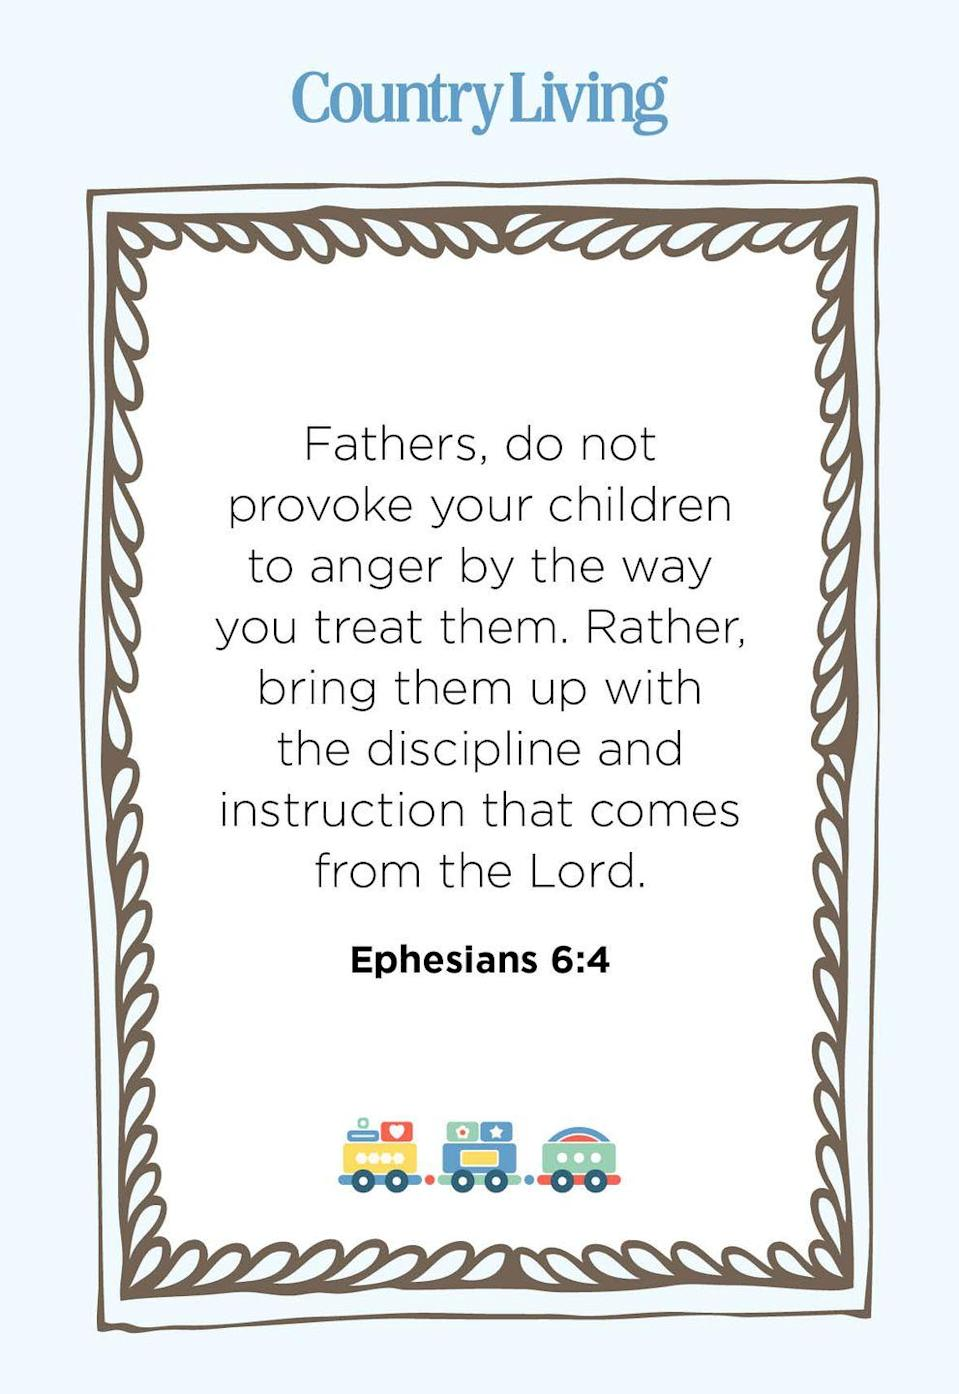 """<p>""""Fathers, do not provoke your children to anger by the way you treat them. Rather, bring them up with the discipline and instruction that comes from the Lord.""""</p>"""